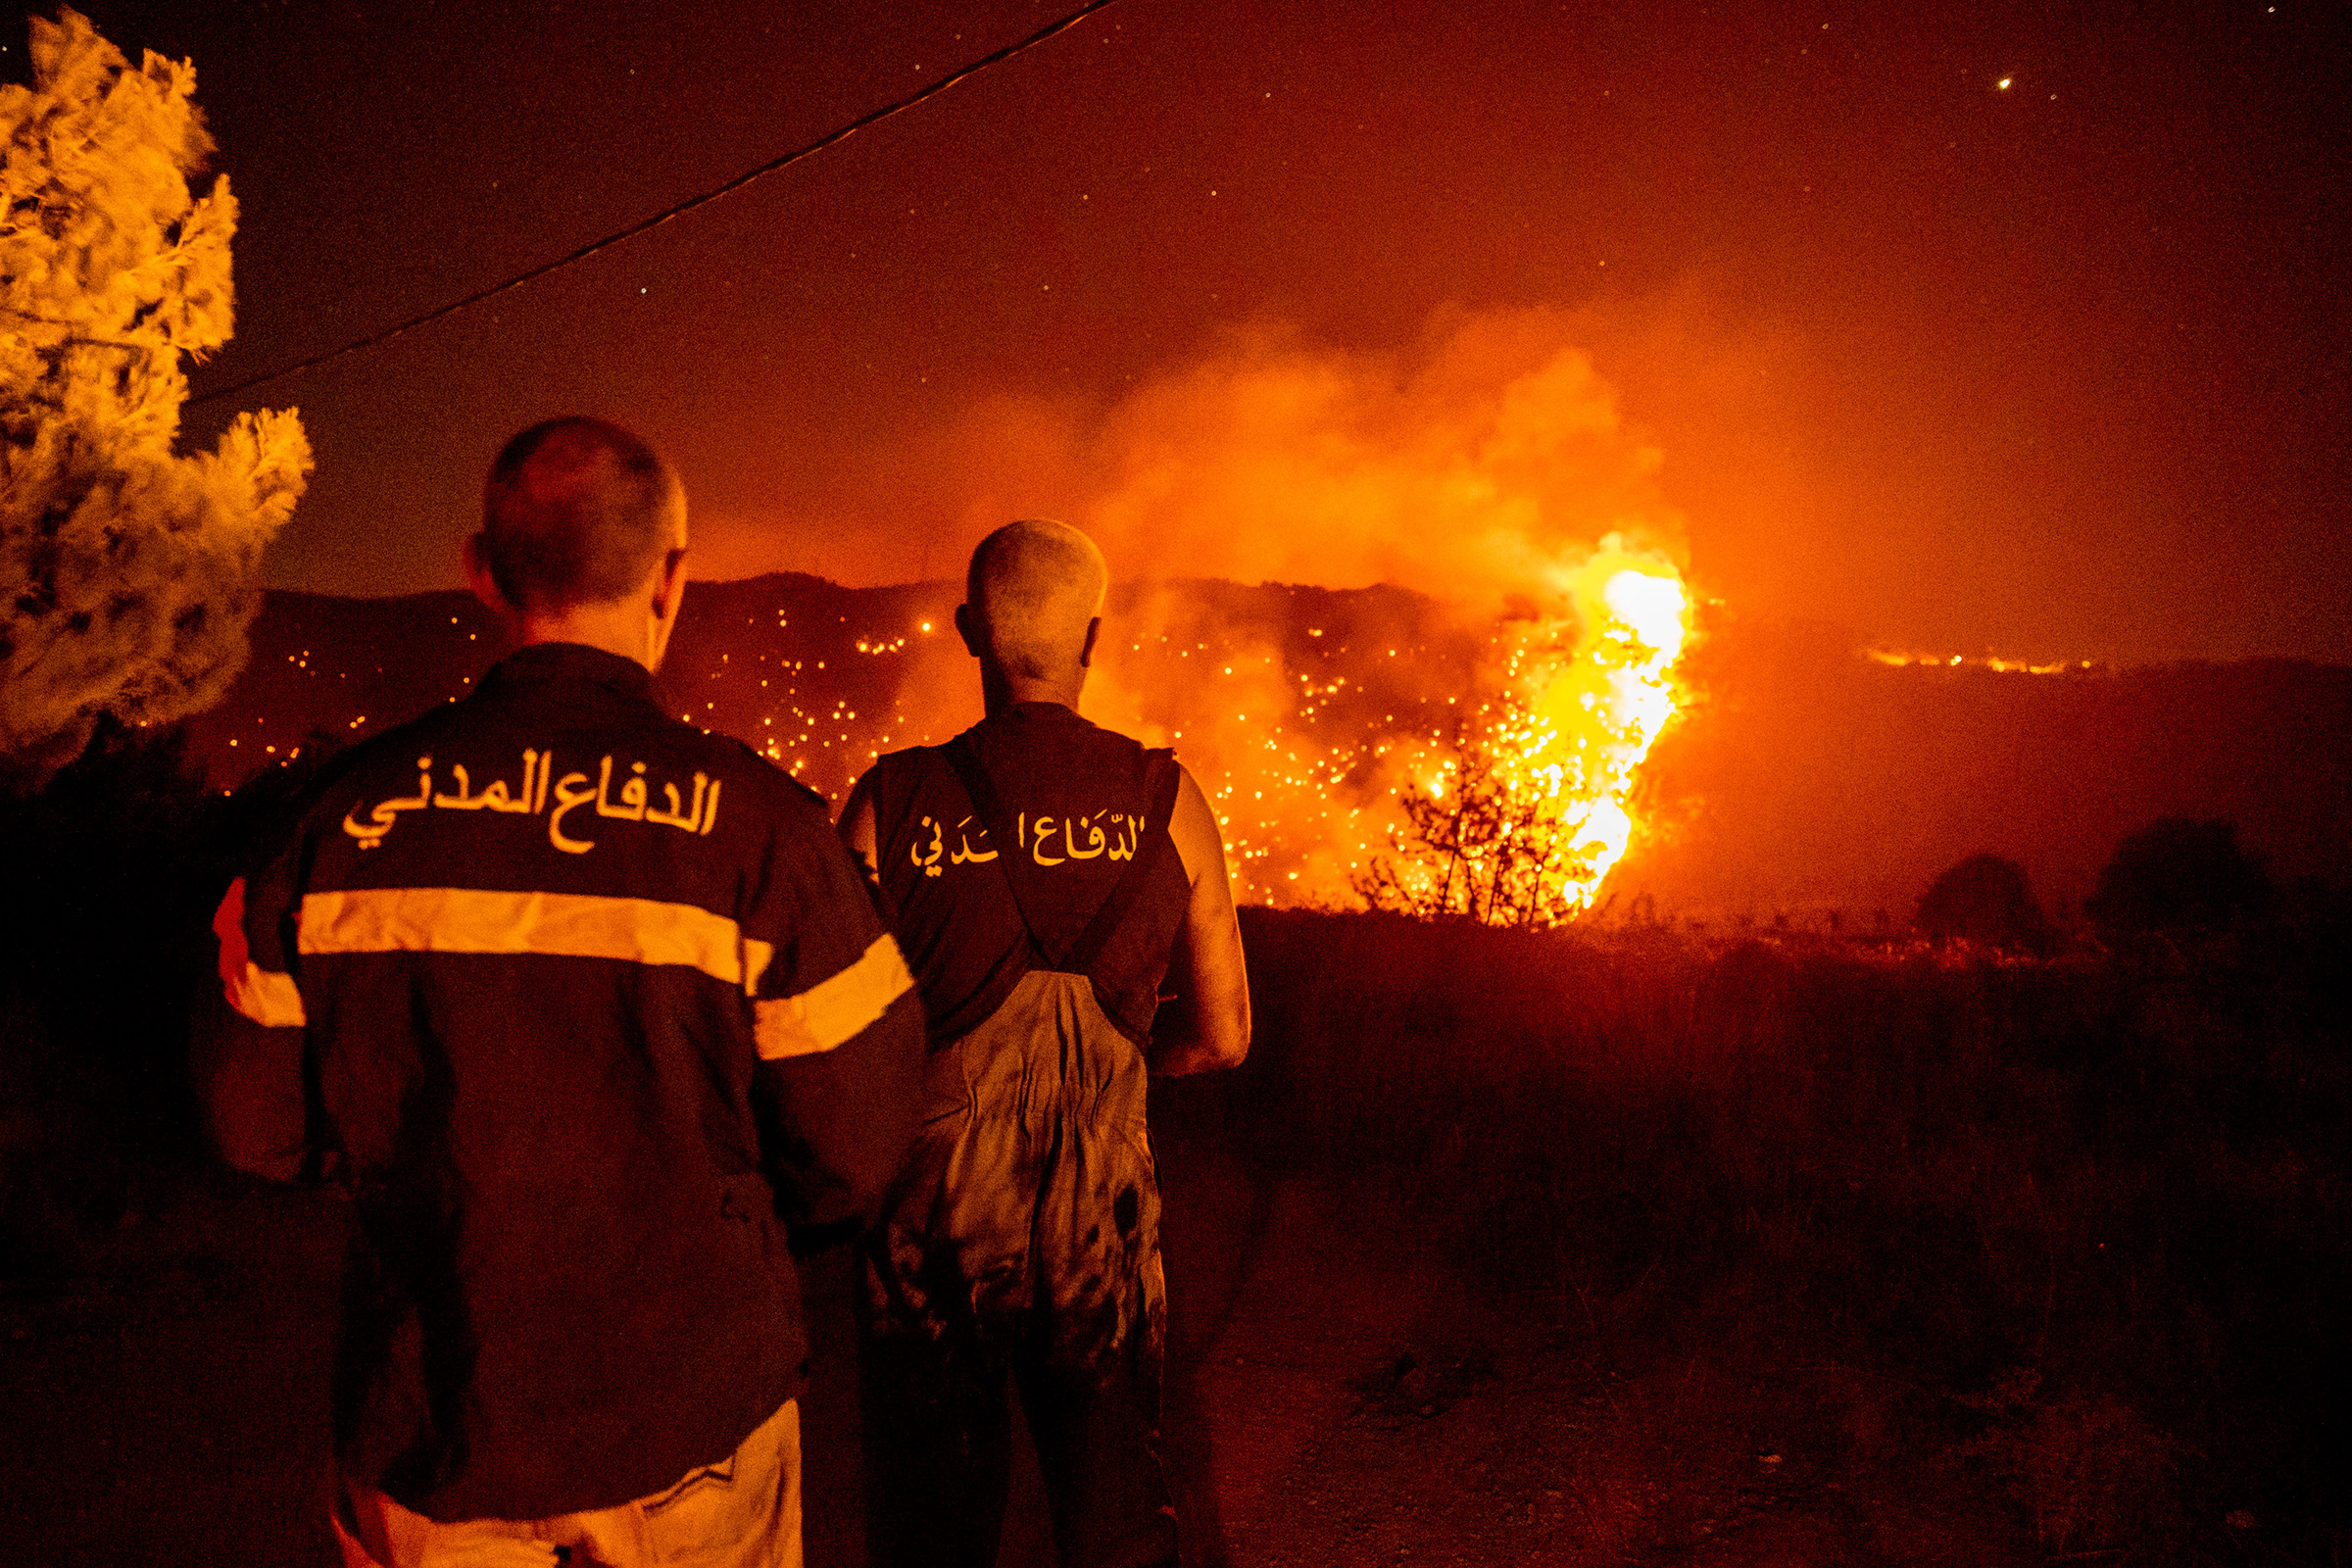 Civil Defense personnel monitor a wildfire burning through hills in Qobayat, Lebanon on July 28. A Lebanese teenager was killed as he joined volunteers battling to fight the fire.